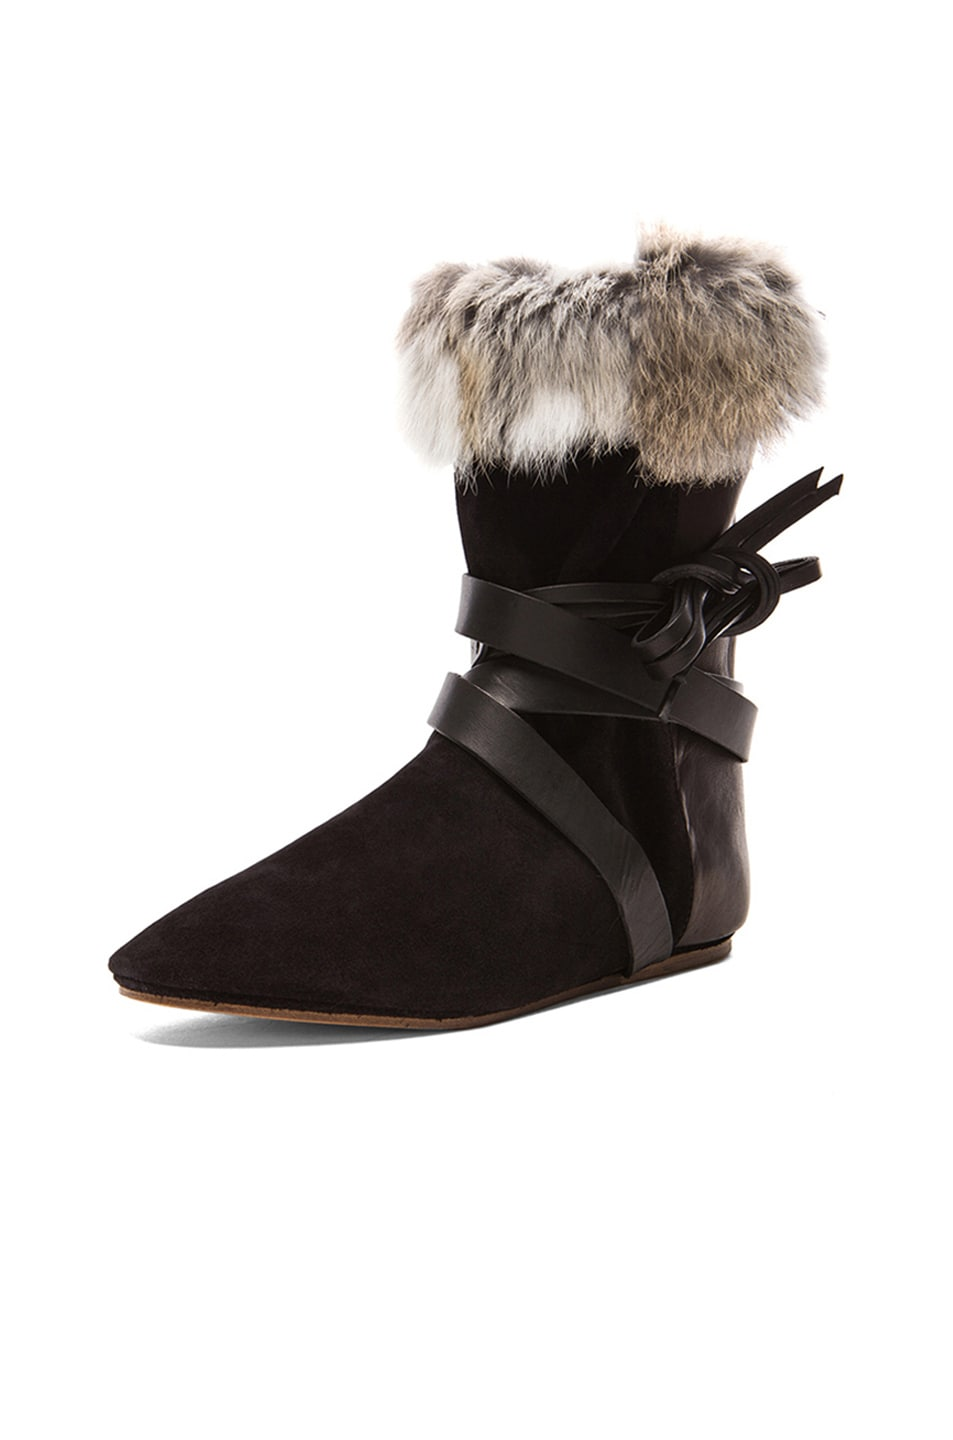 Image 2 of Isabel Marant Nia Couture Calfskin Velvet Leather Boots with Fur in Black